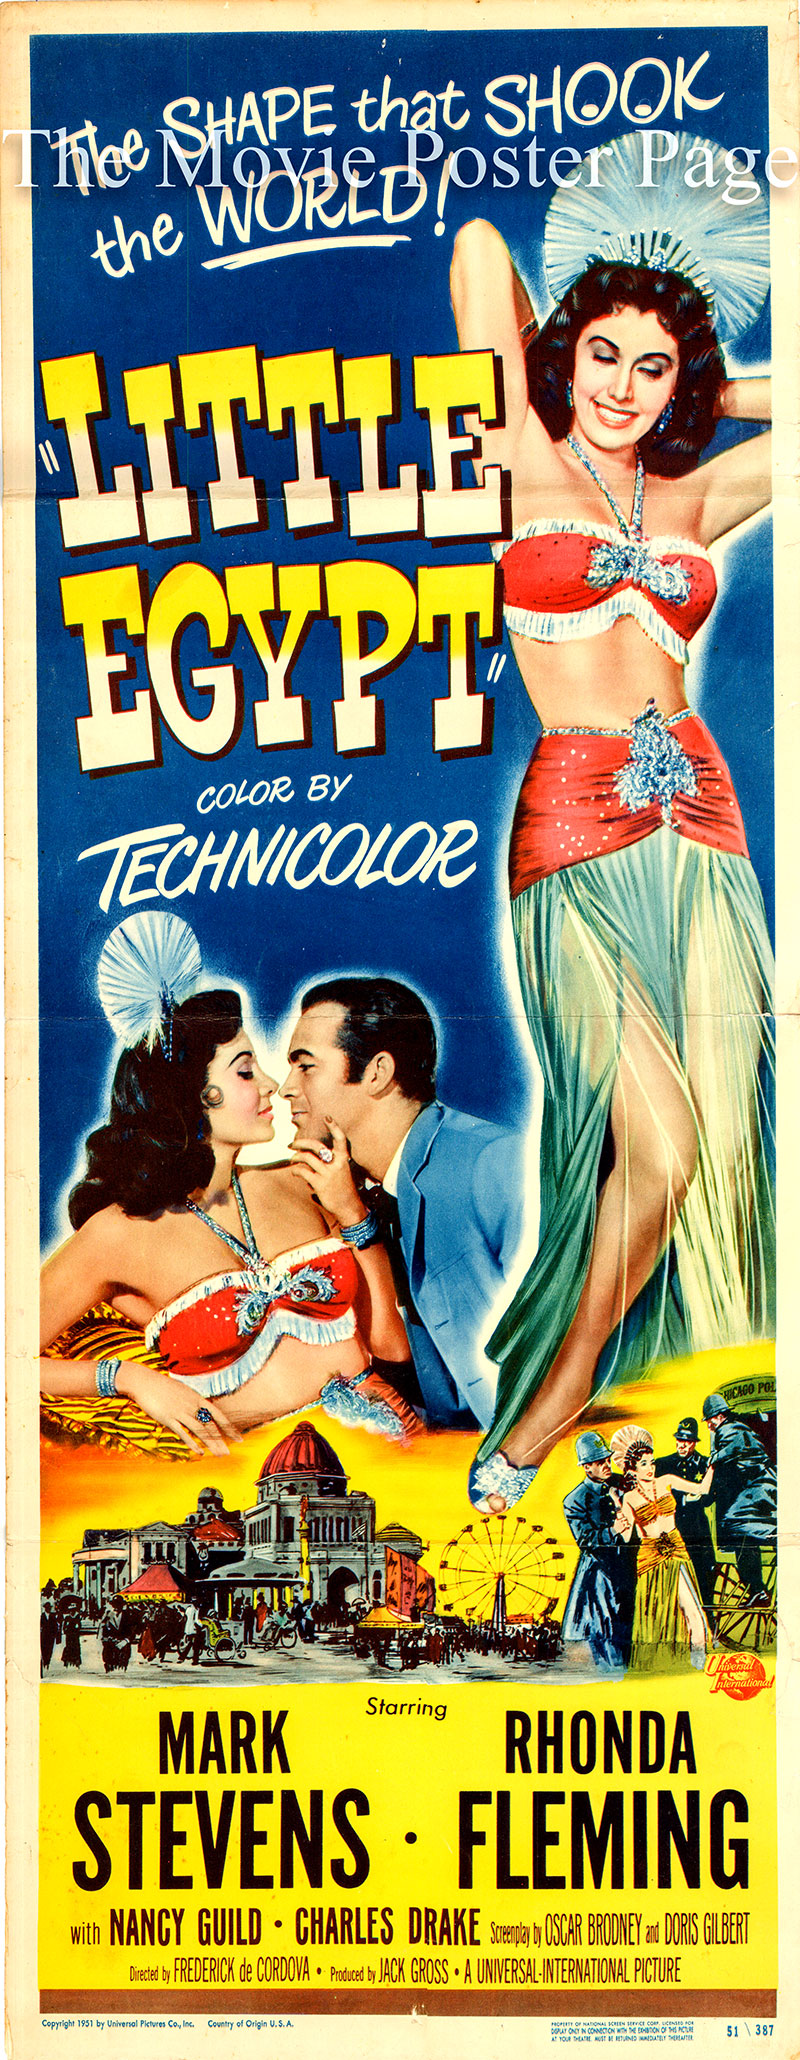 Pictured is a US promotional insert poster for the 1951 Frederick De Cordova film Little Egypt starring Rhonda Fleming as Izora.